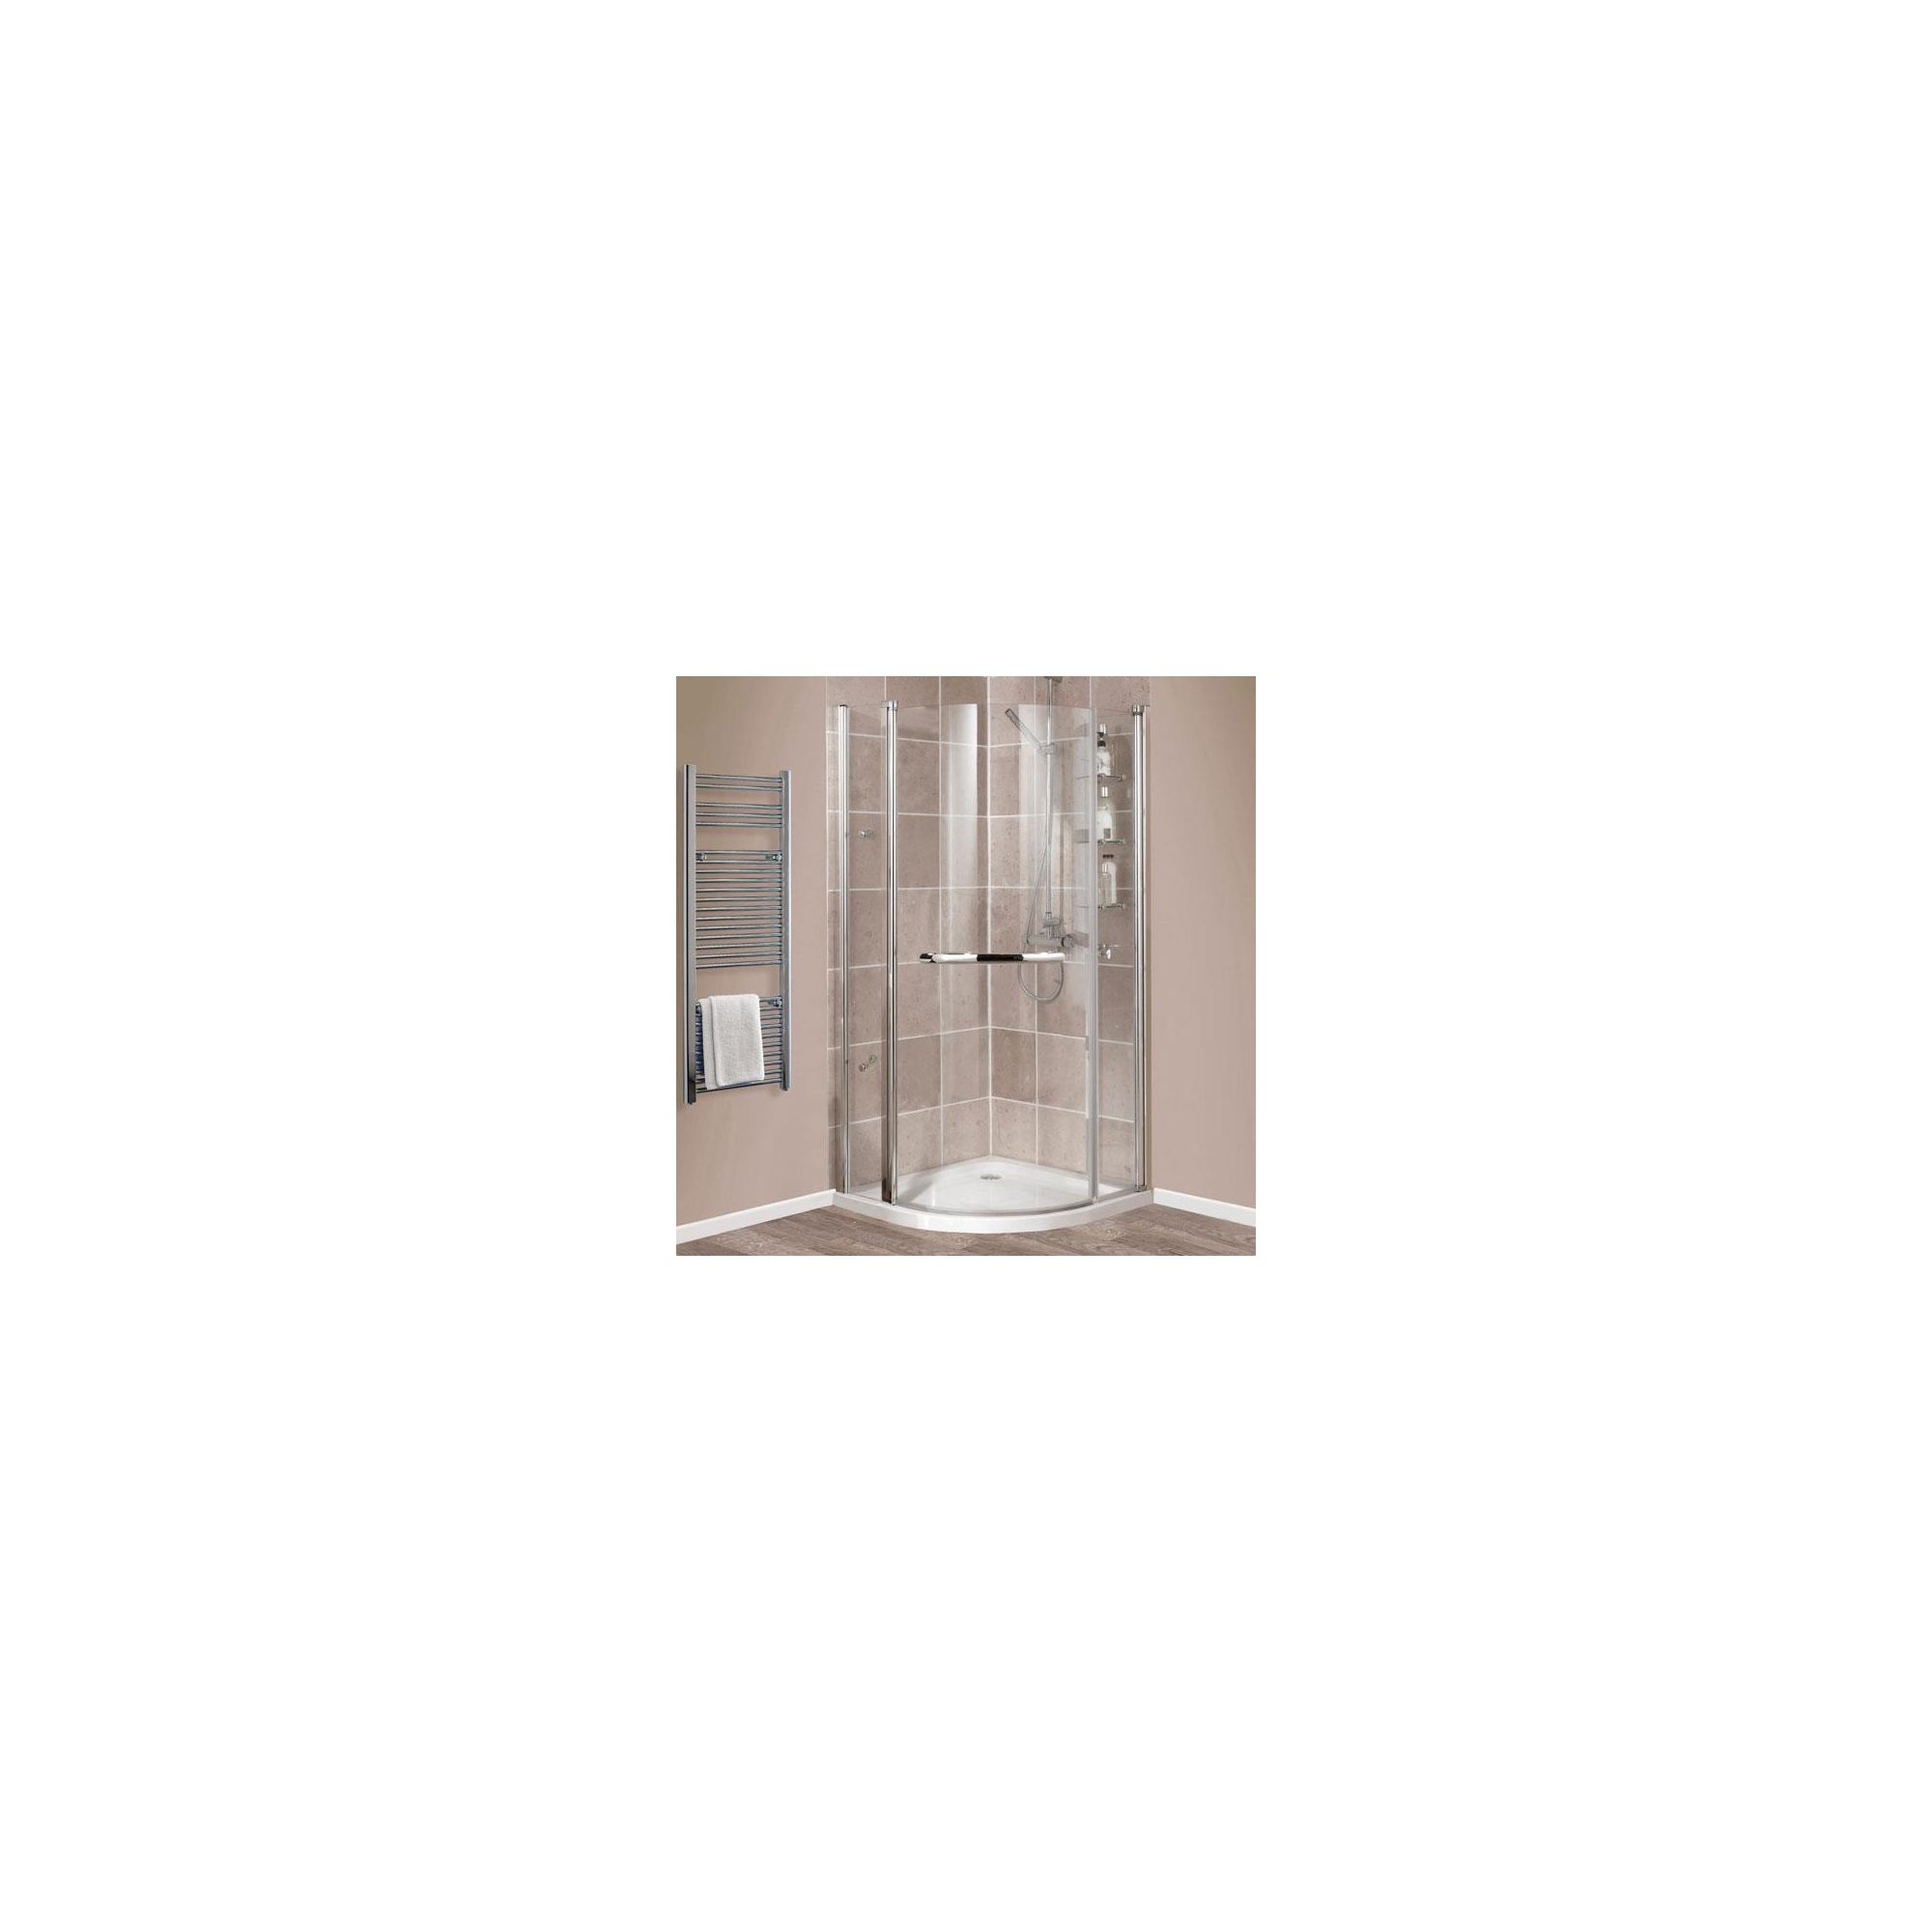 Balterley Quadrant Shower Door with Rotating Shelves, 900mm x 900mm, 6mm Glass at Tesco Direct